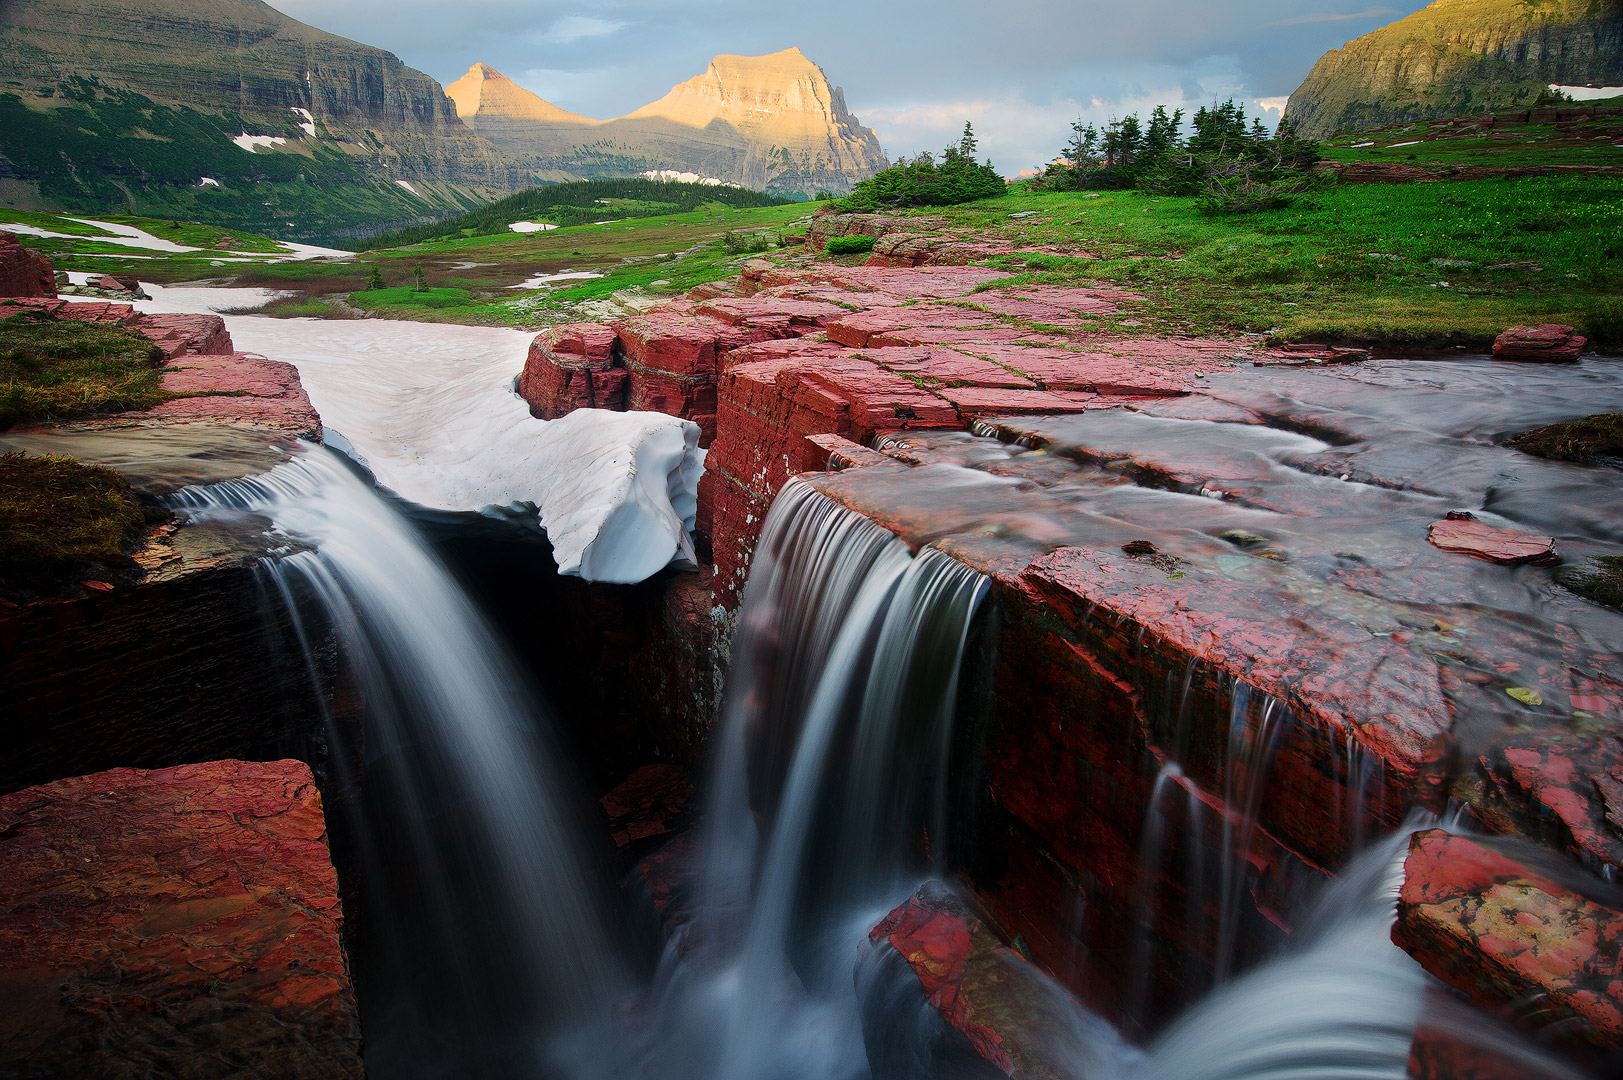 The fame triple falls of Glacier can be found around Logan's Pass and when there is plenty of water, this waterfall can be tantalizingly...